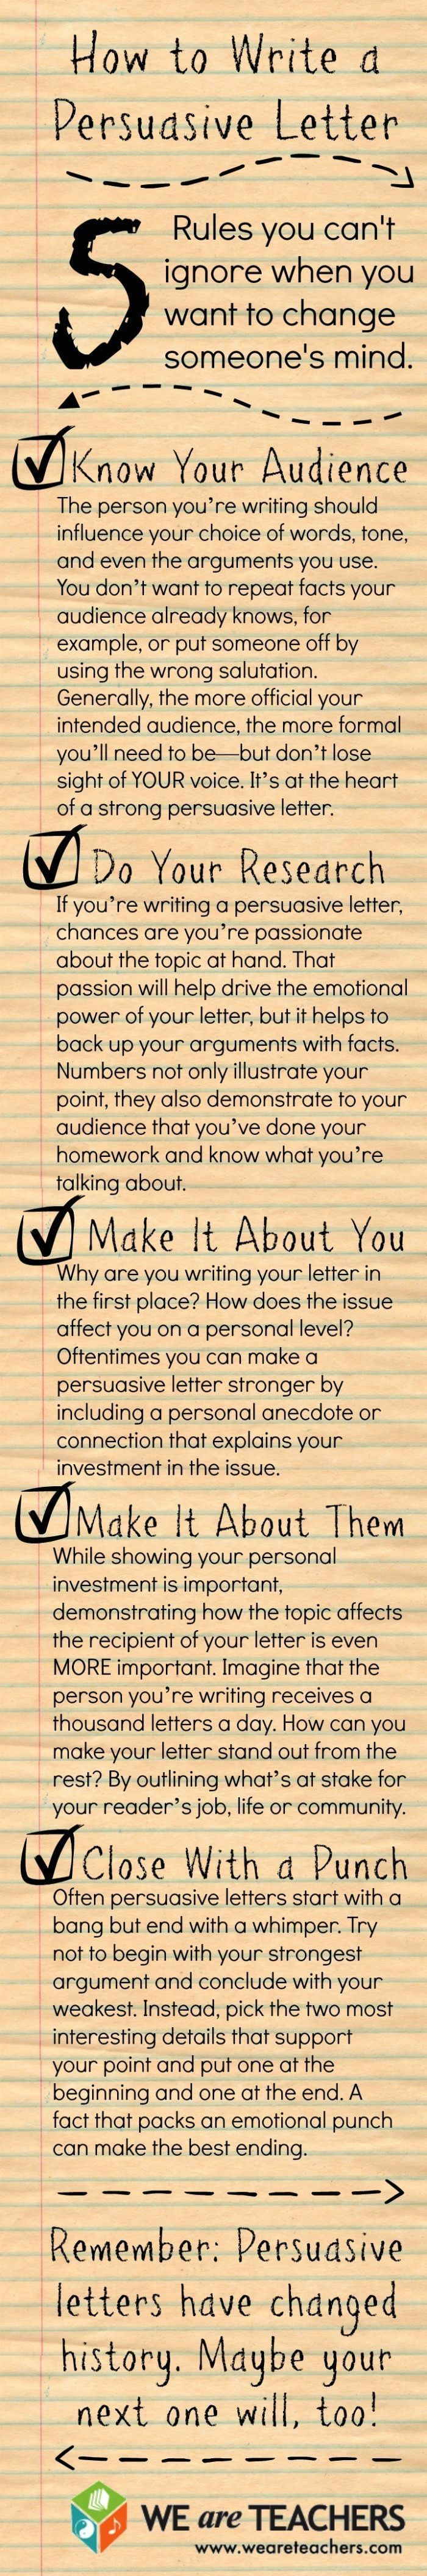 writing persuasive letter Persuasive writing: persuasive writing (peter meakin) anti-smoking campaign persuasive letter writing web (b gove) doc persuasive writing self assessment.